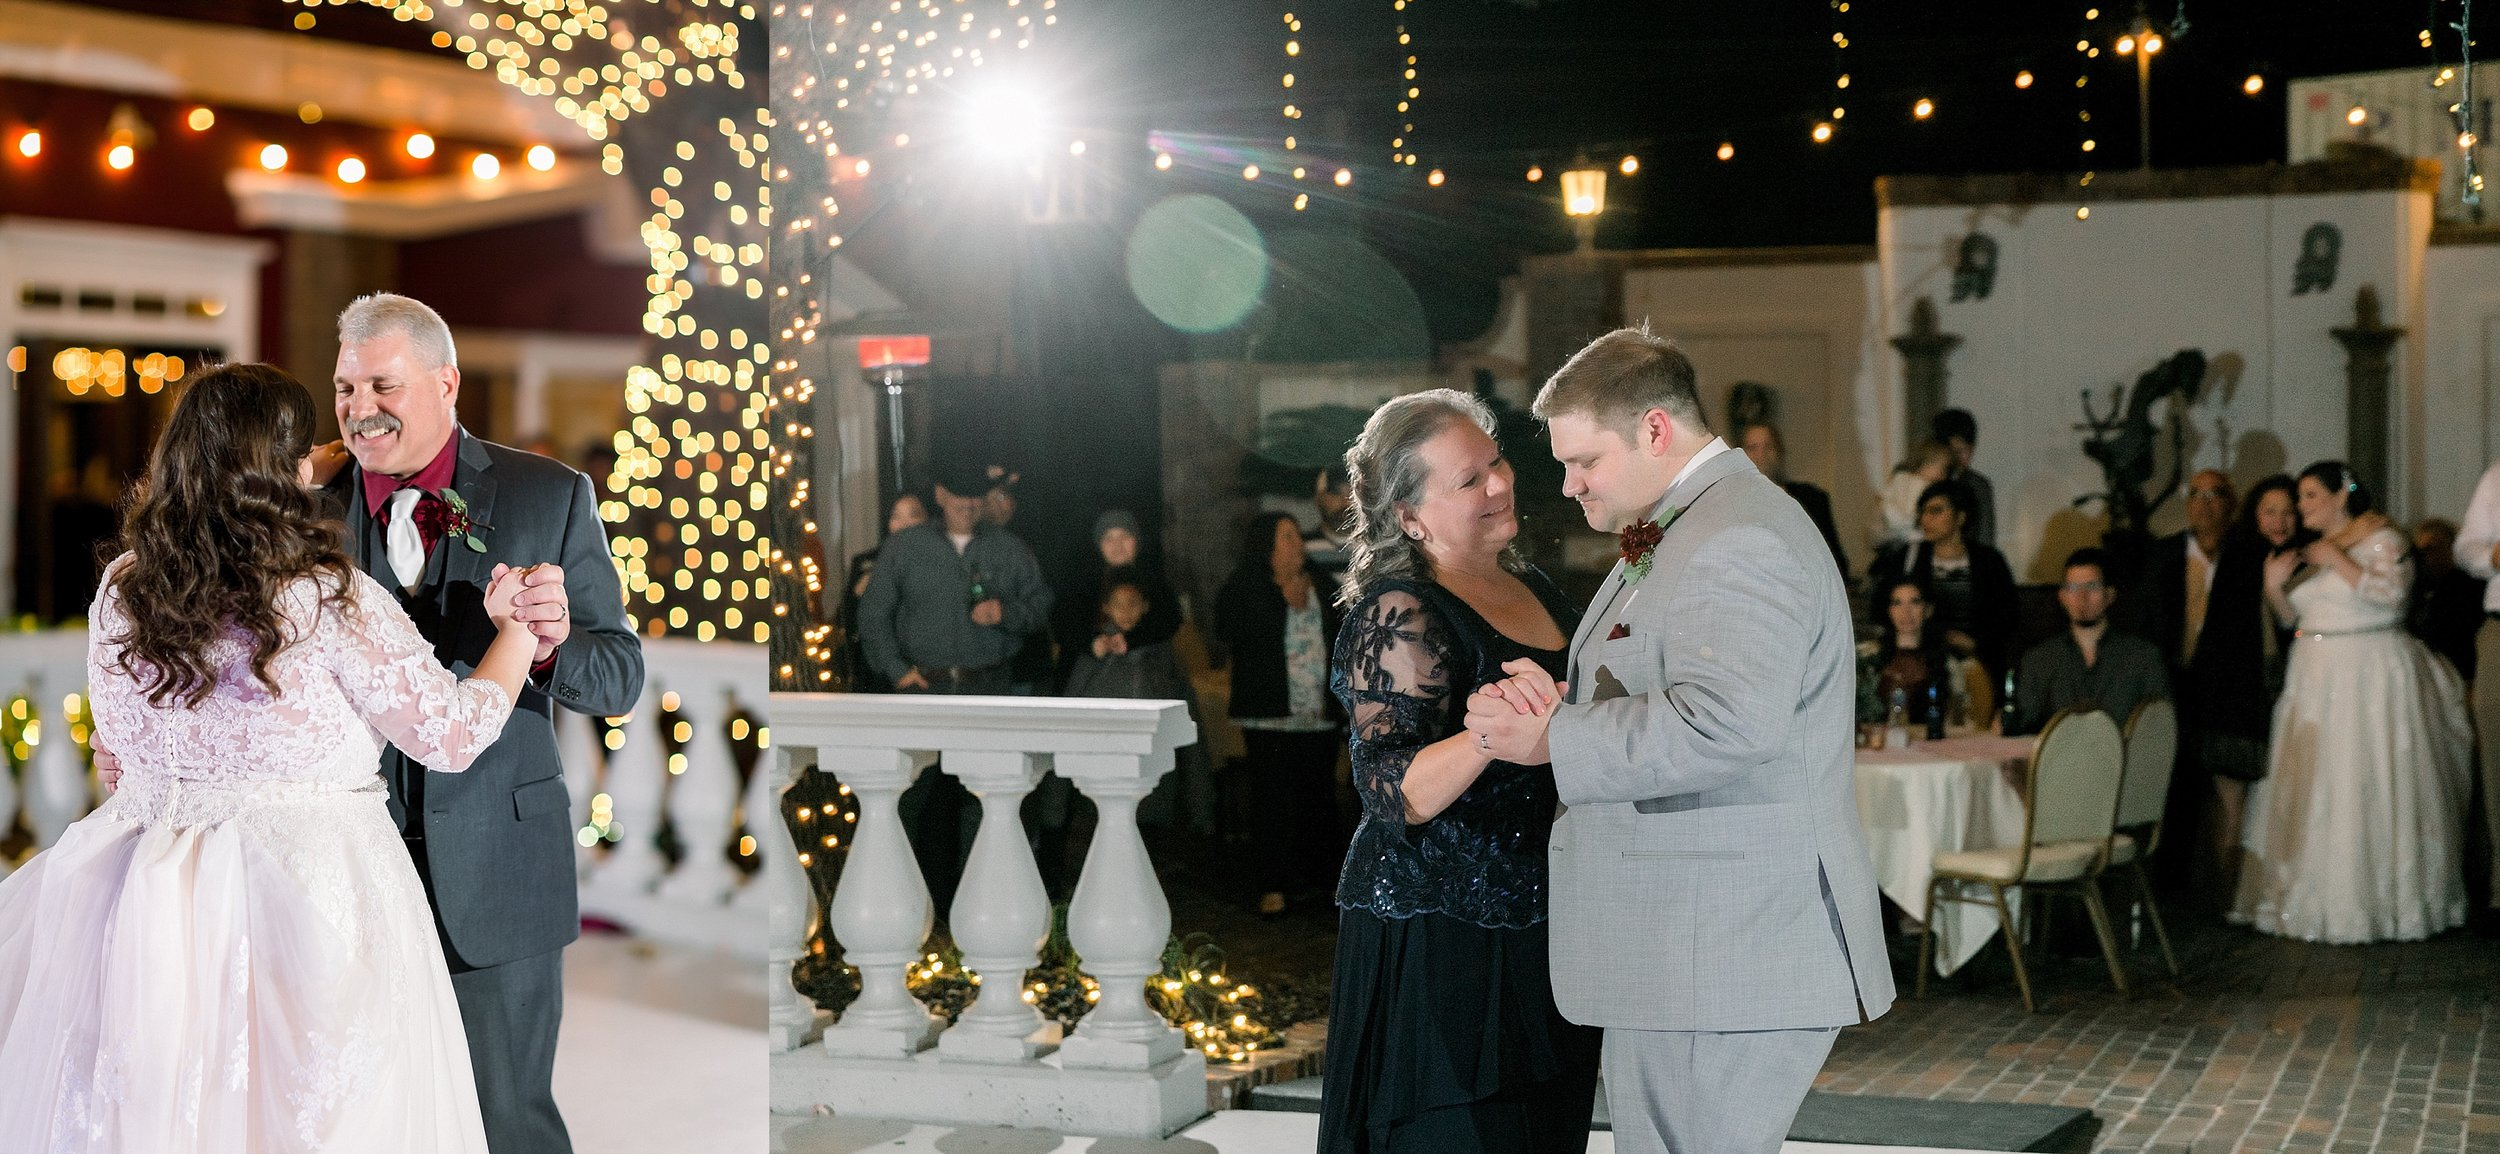 gaslight-at-courtyard-square-corpus-christi-wedding-omni-hotel-fall-winter-wedding-texas-wedding-photographer-lauren-pinson-0096.jpg